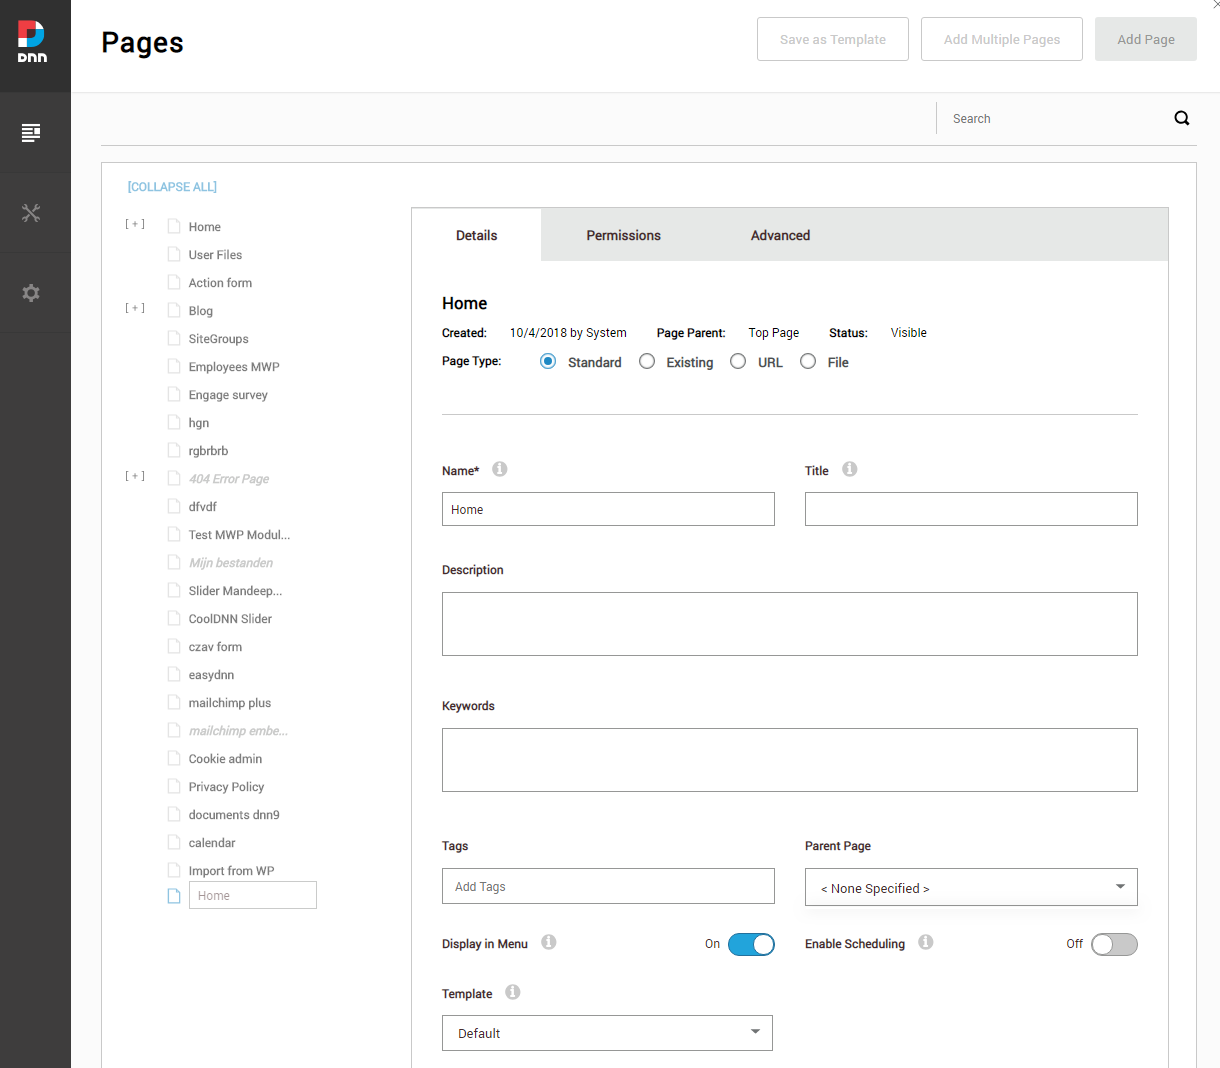 DNN Page Management